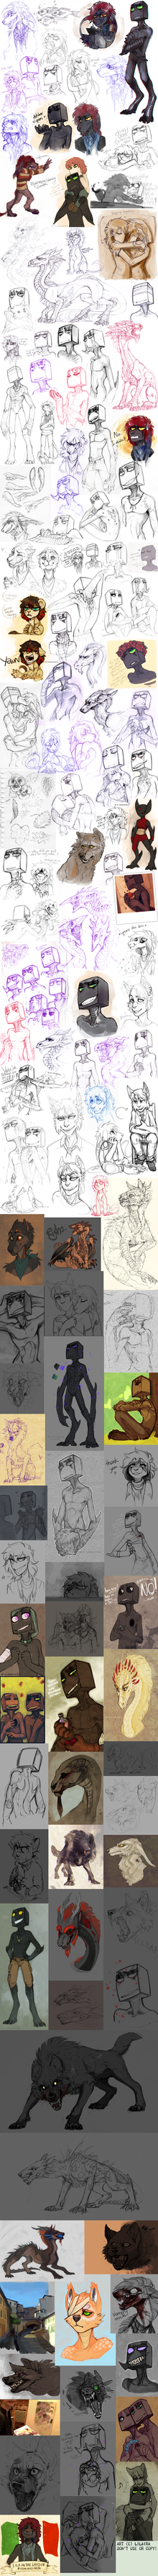 Sketch dump 56 by LiLaiRa